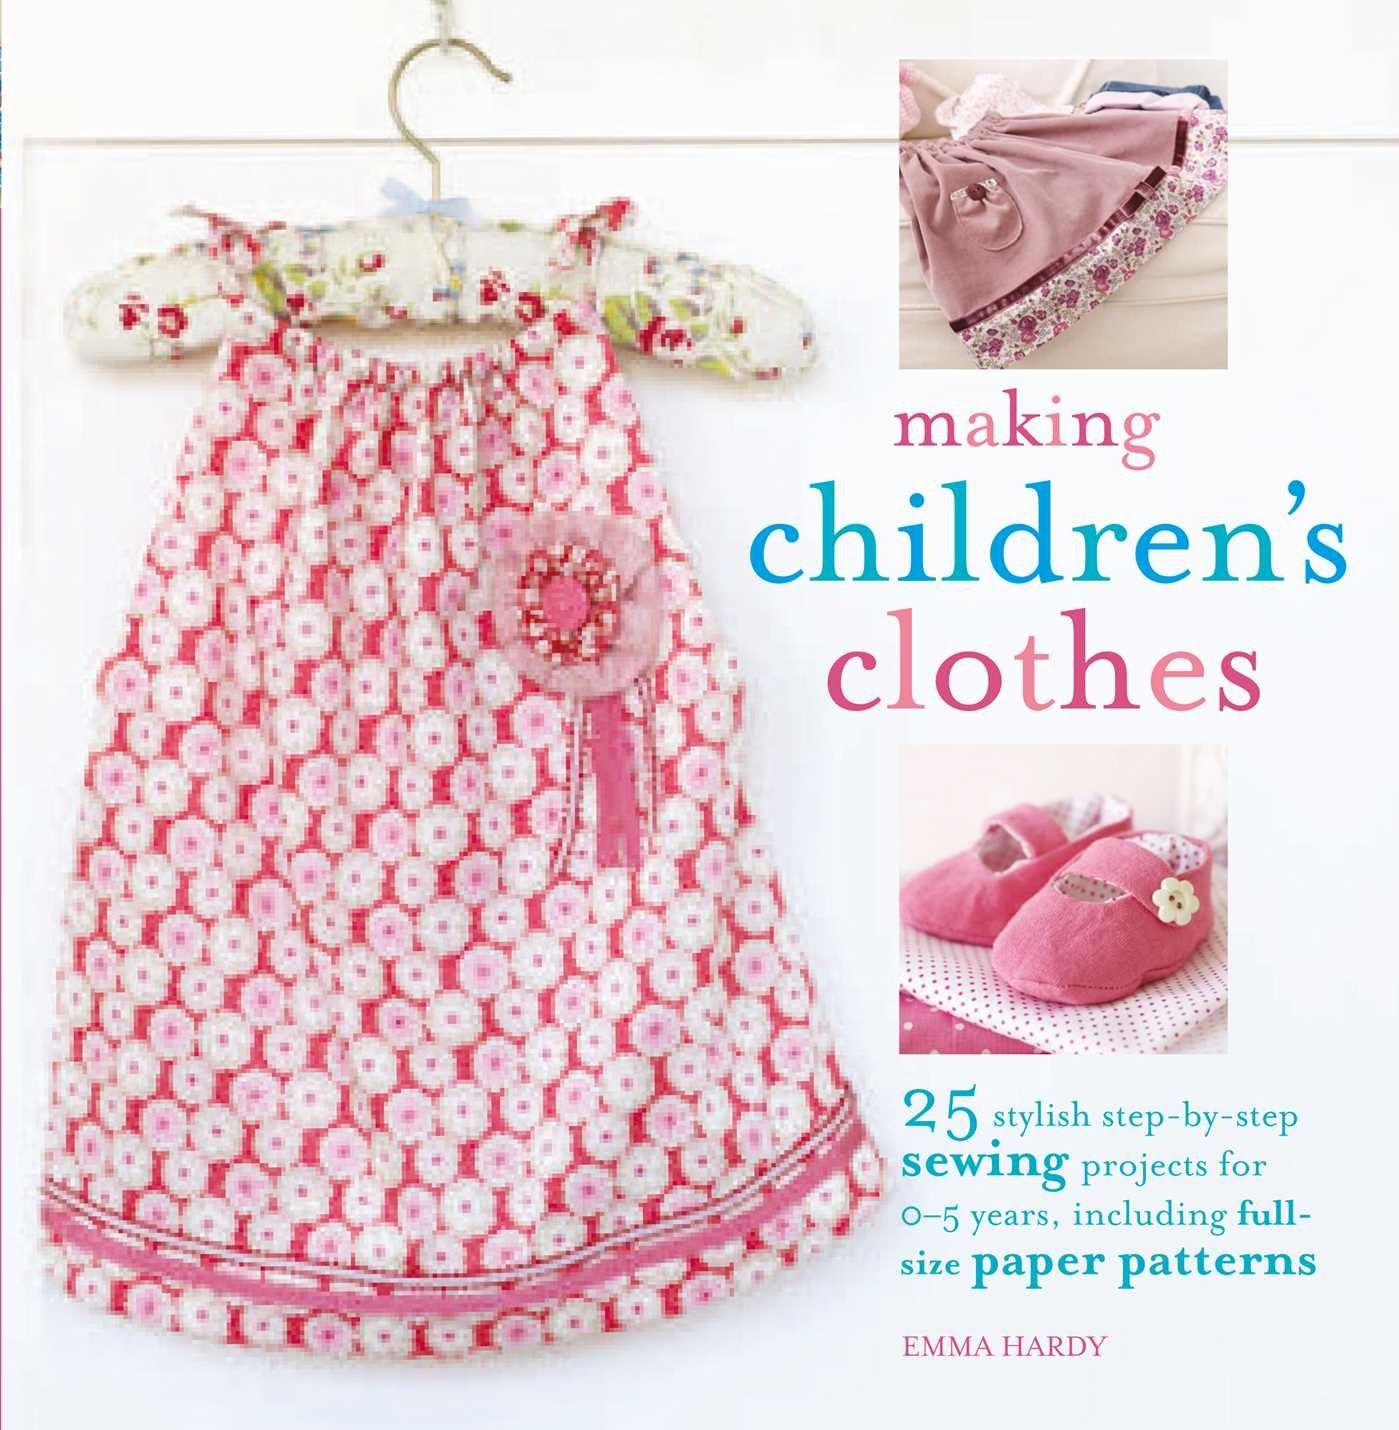 Childrens making clothes 25 stylish step images